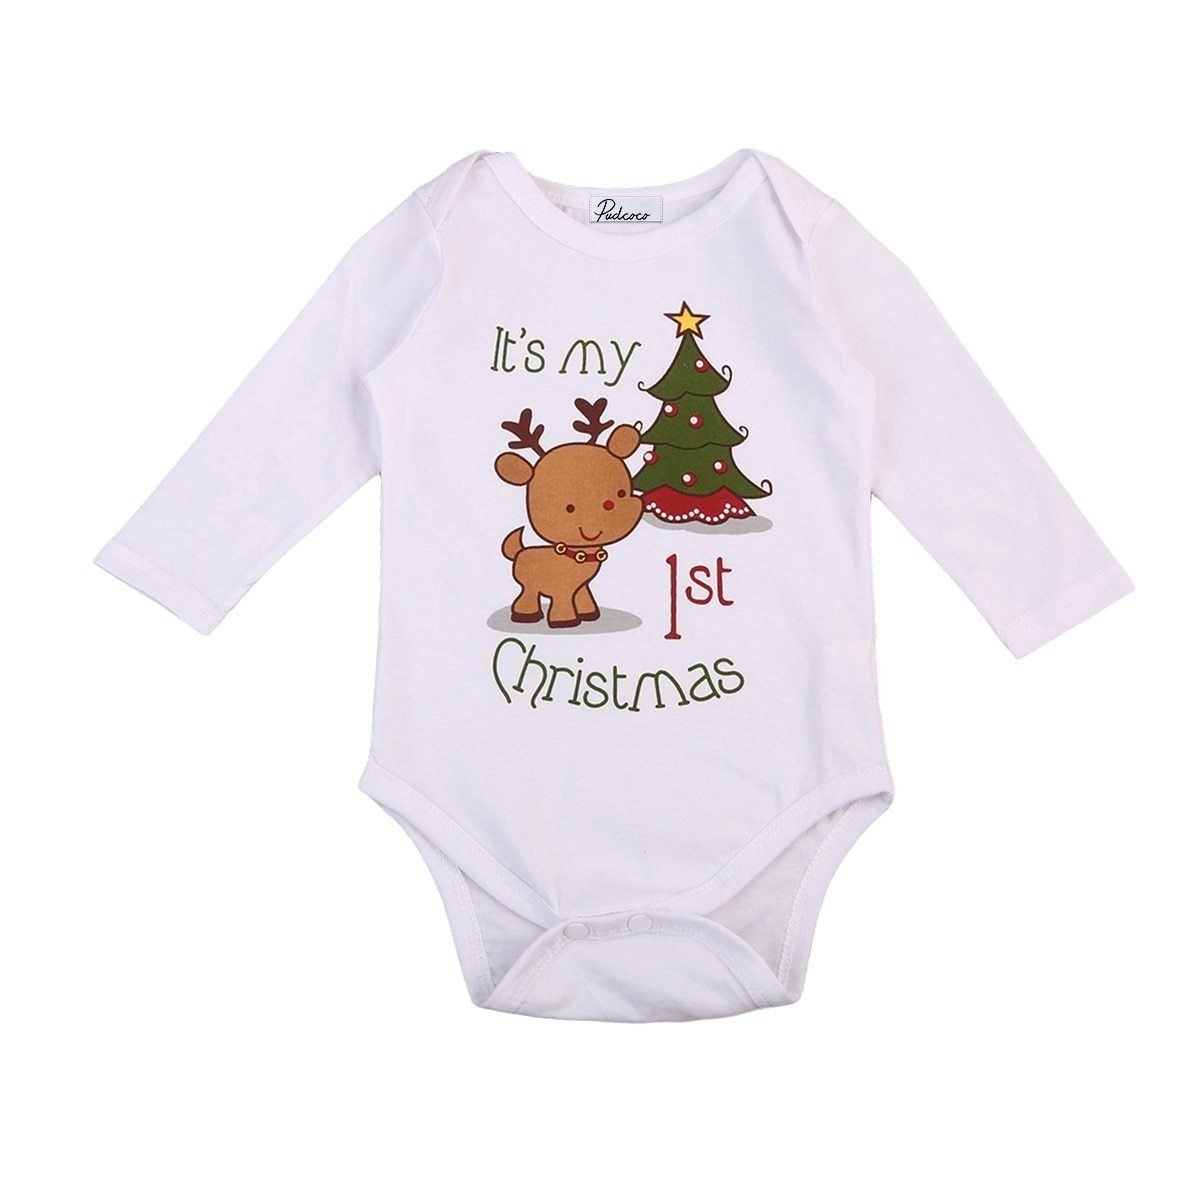 My First Christmas.It S My First Christmas Romper